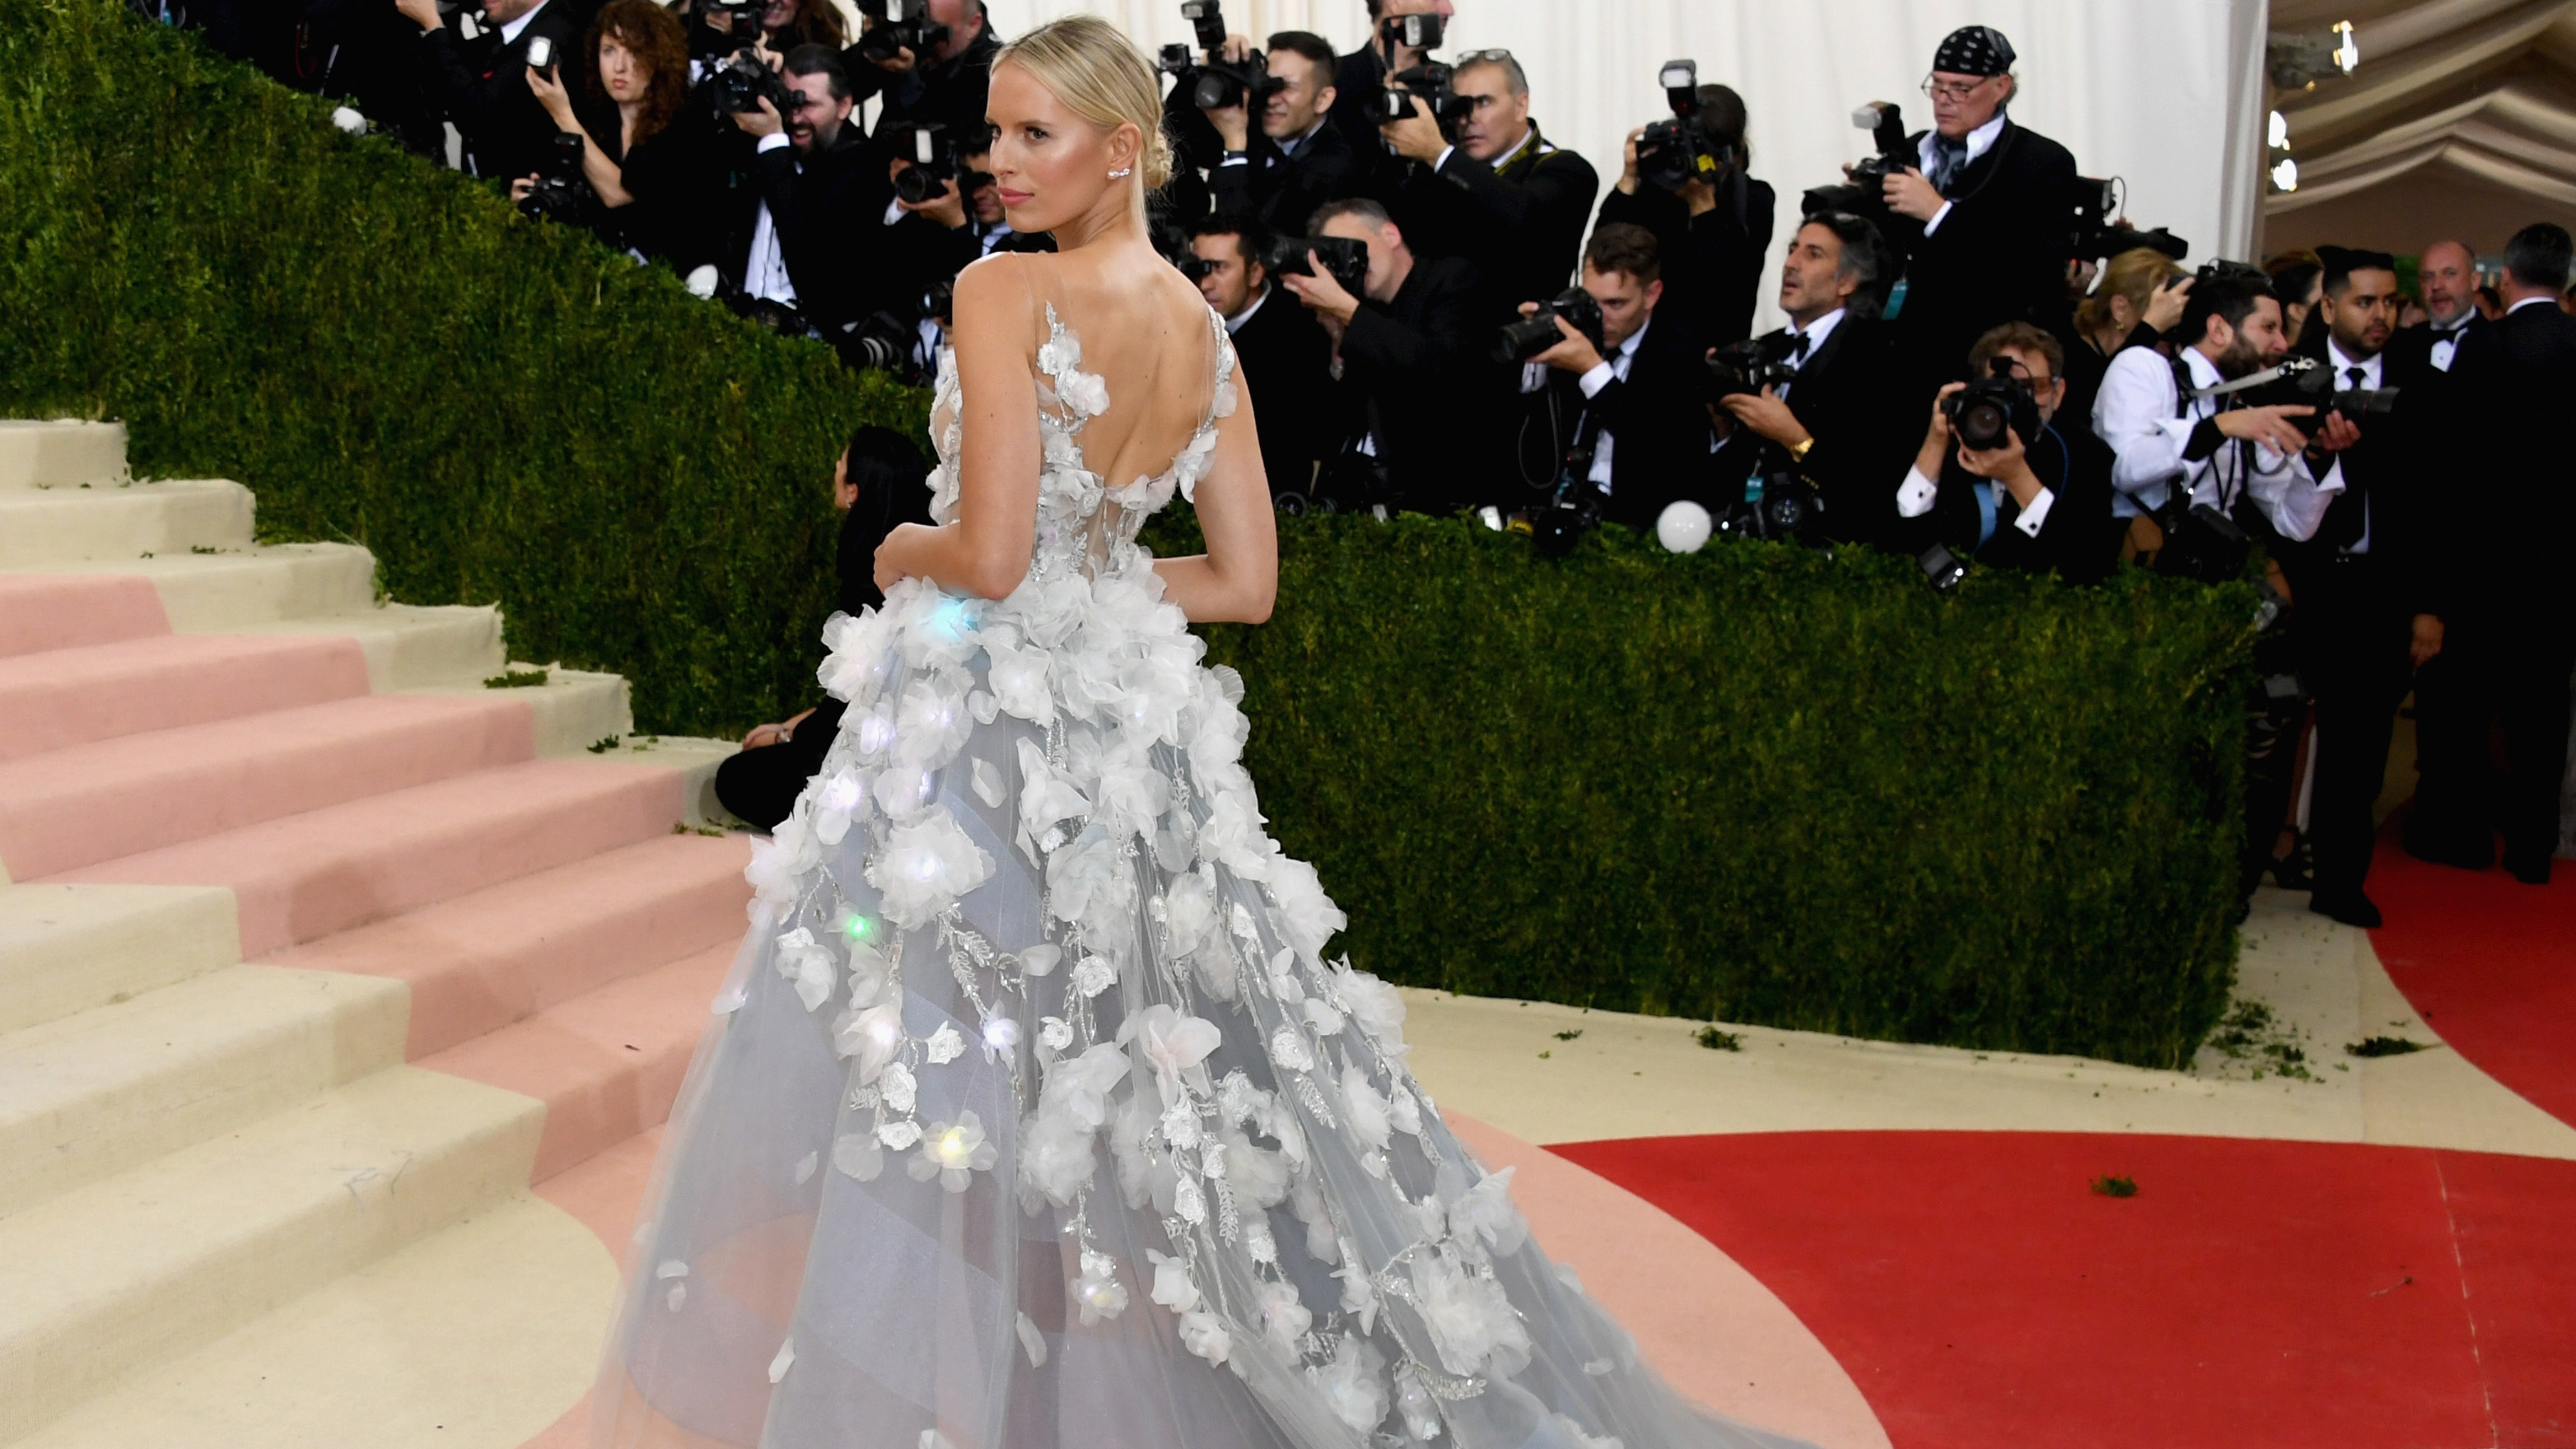 Ibm Watson Co Designed The Most High Tech Dress At The Met Gala